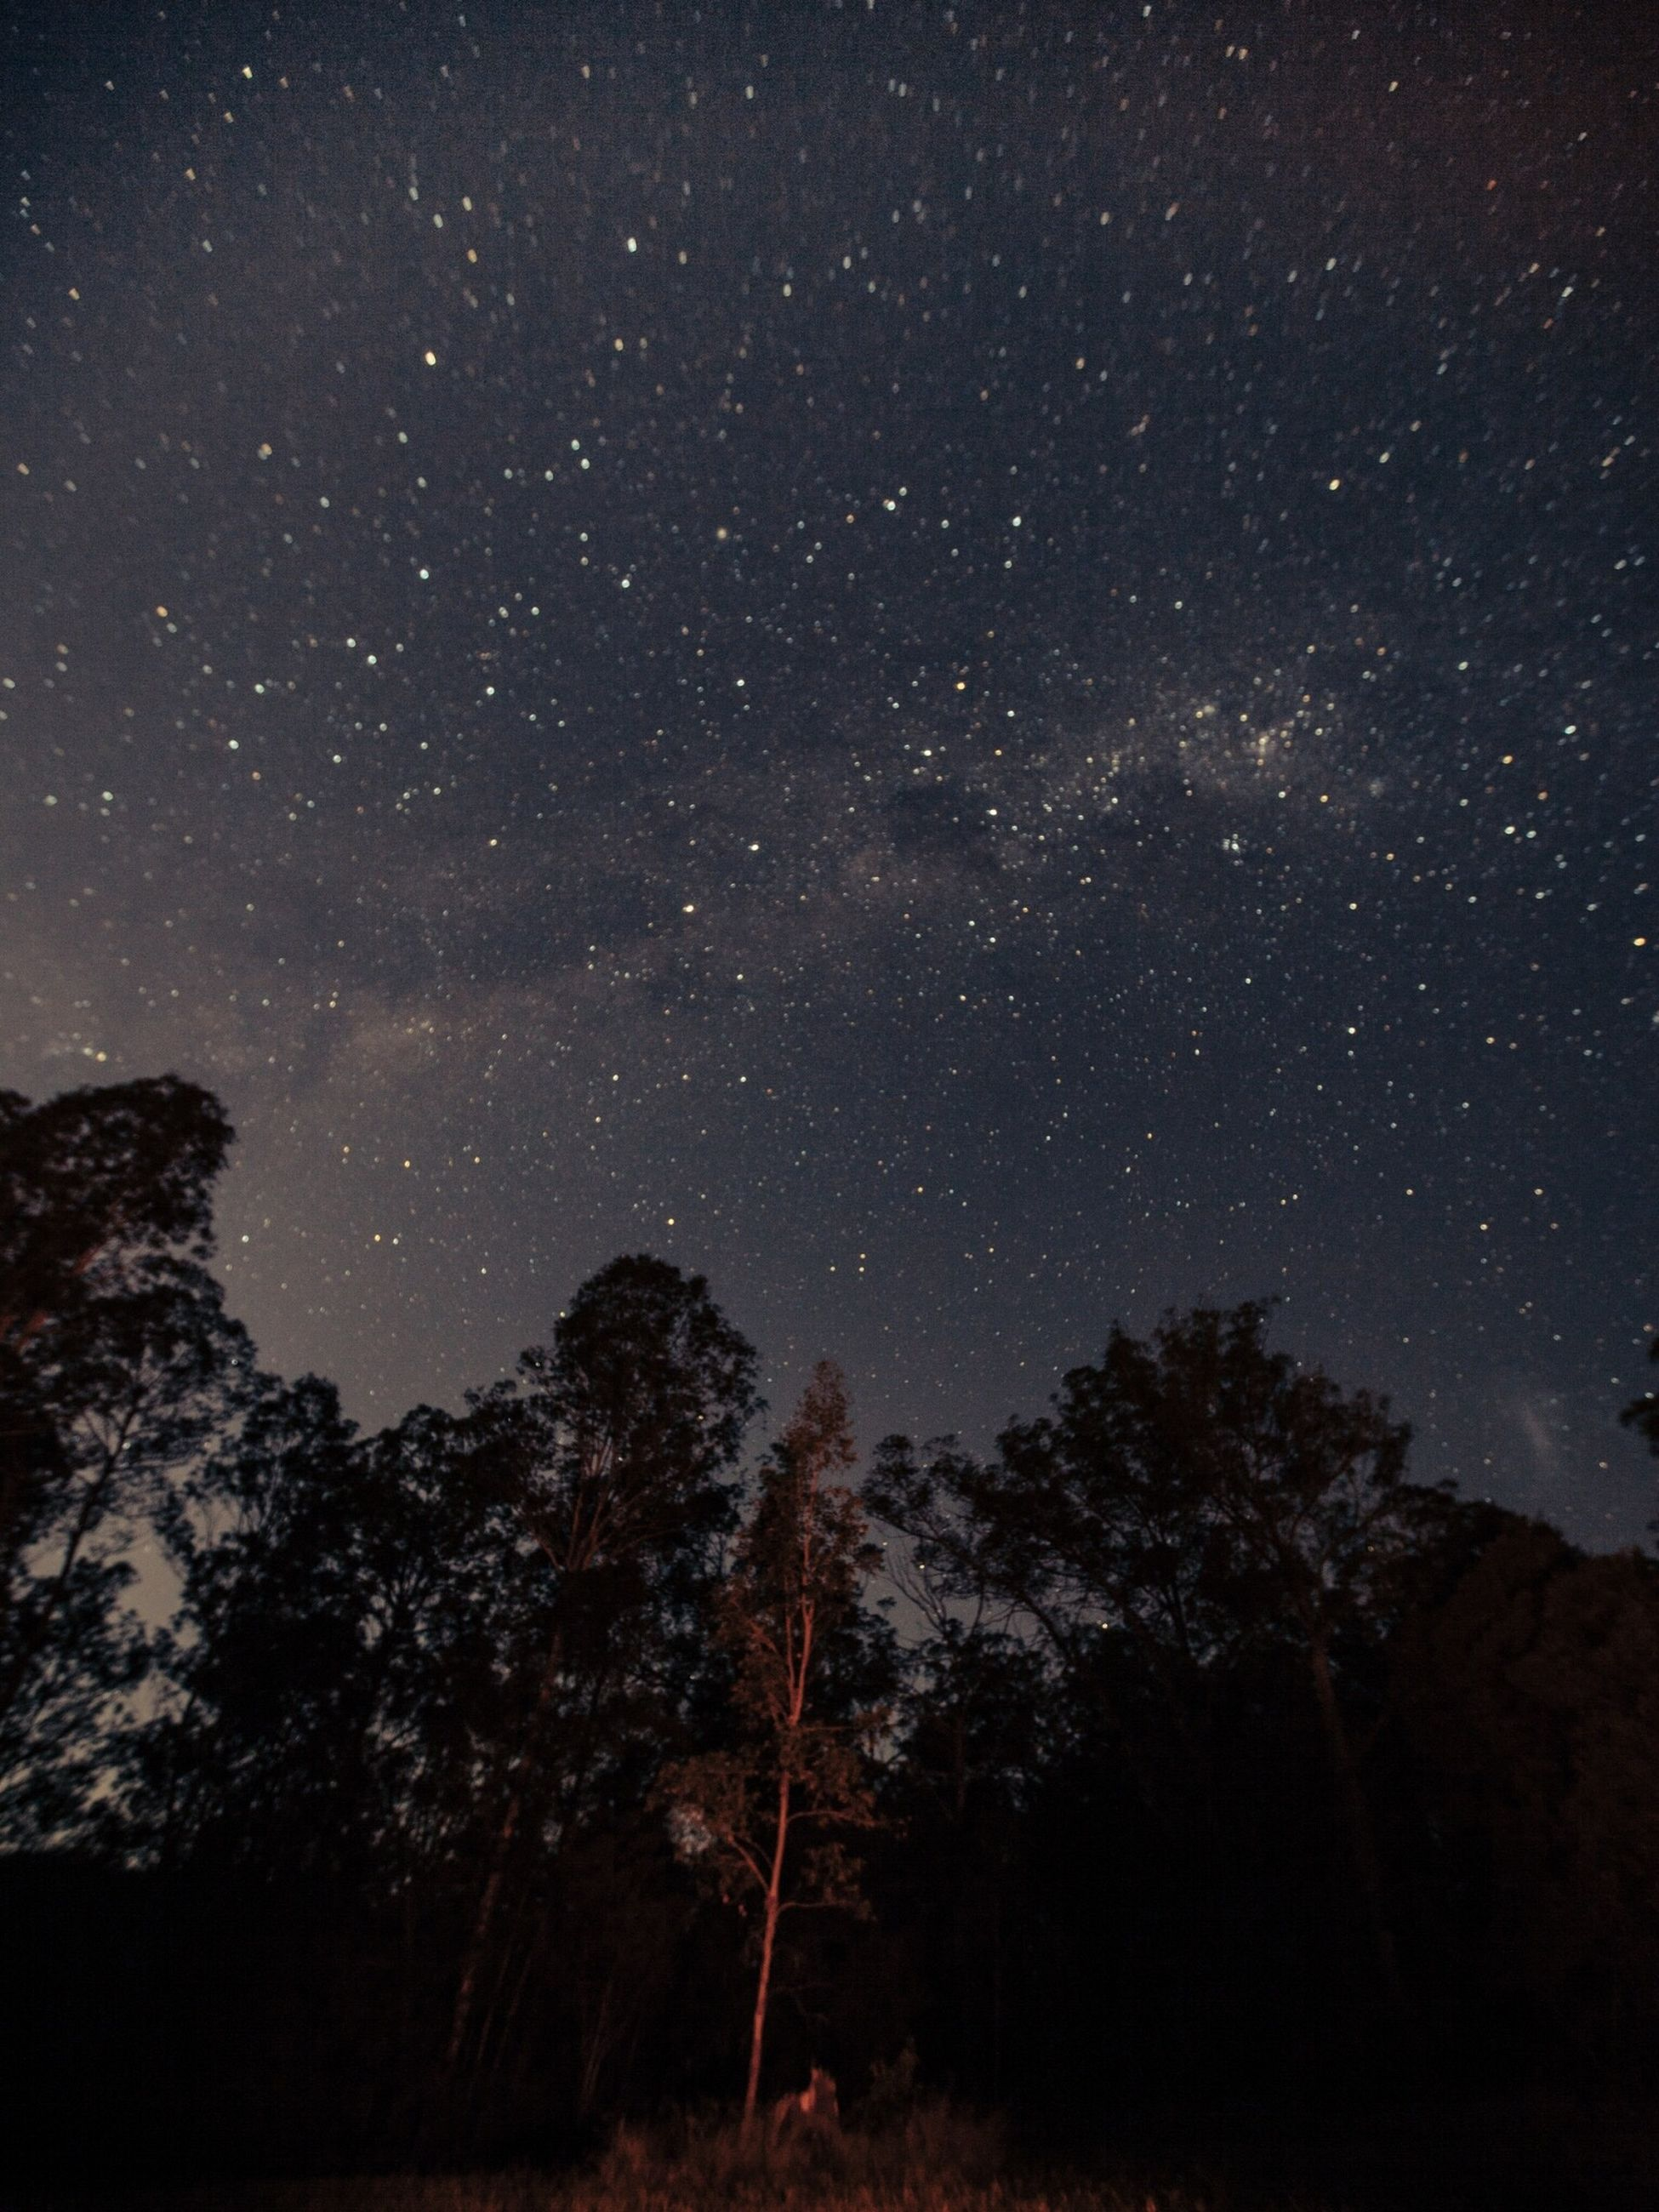 night, star - space, sky, space, tree, astronomy, beauty in nature, plant, scenics - nature, tranquility, nature, star, low angle view, tranquil scene, galaxy, no people, star field, infinity, idyllic, outdoors, milky way